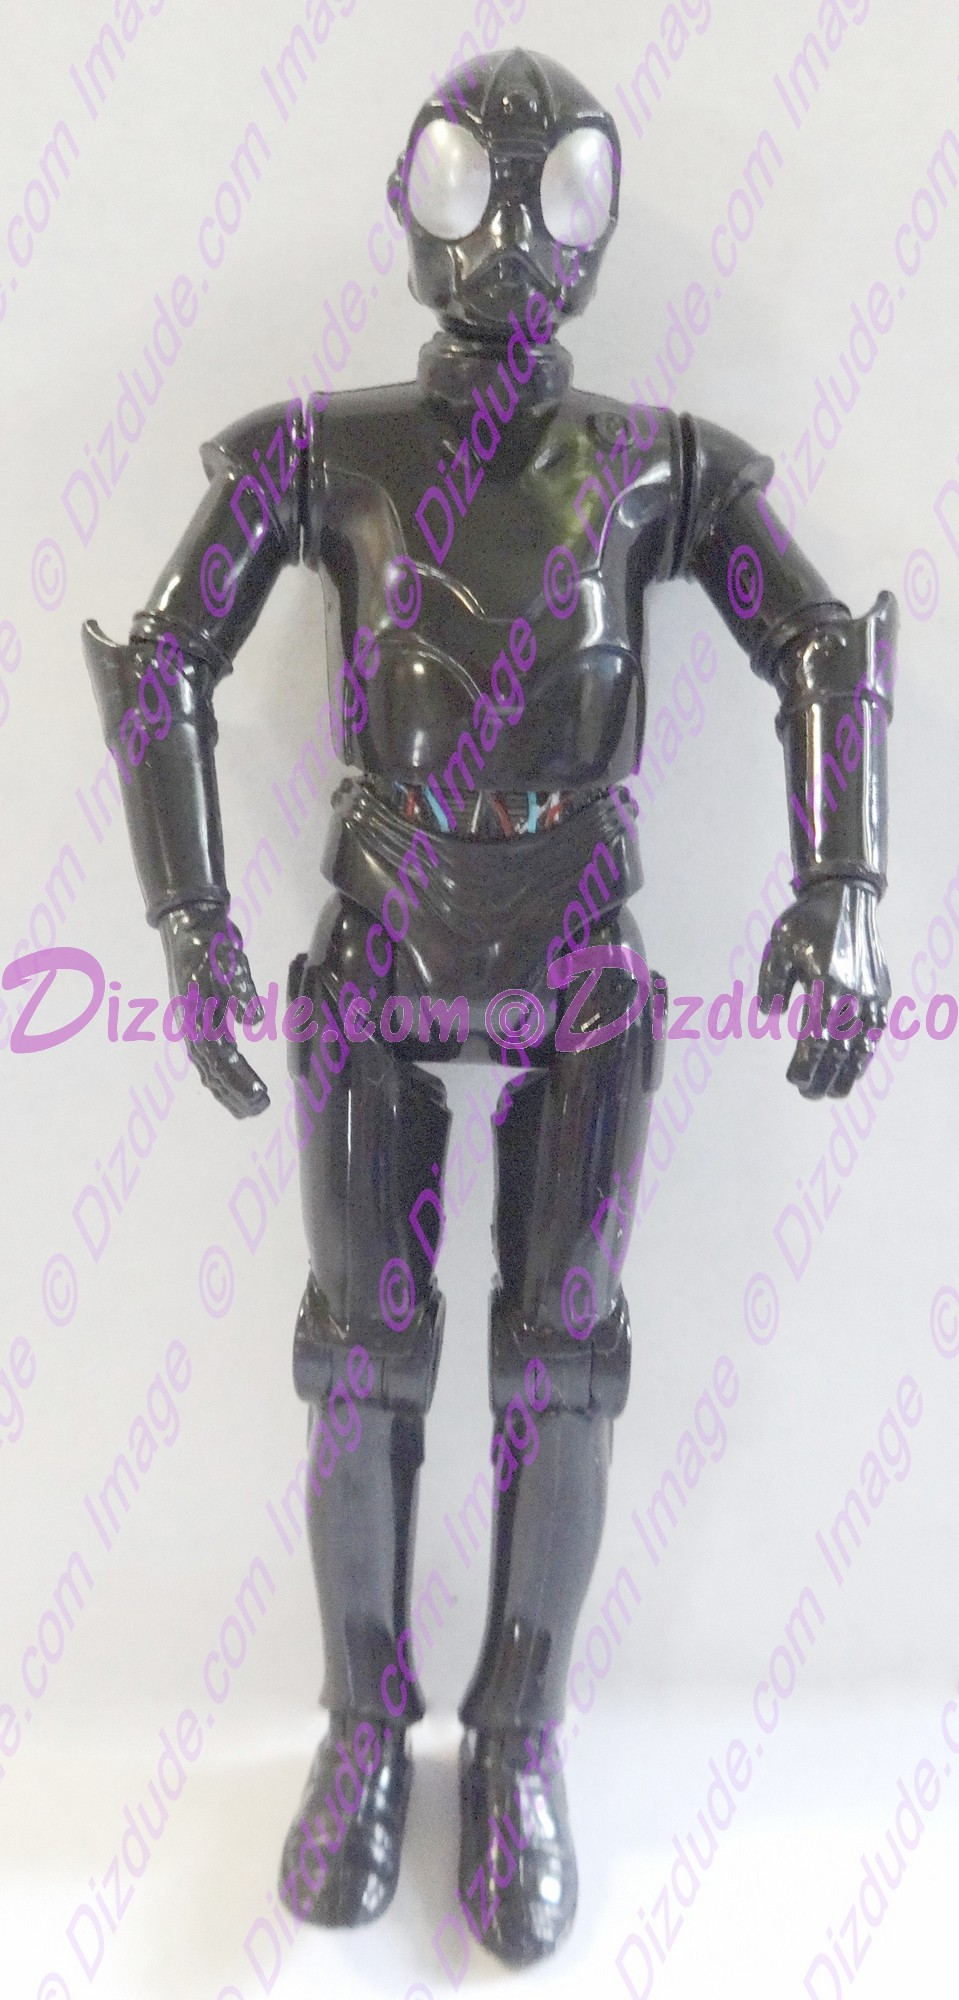 Black RA Protocol Droid from Disney Star Wars Build-A-Droid Factory © Dizdude.com